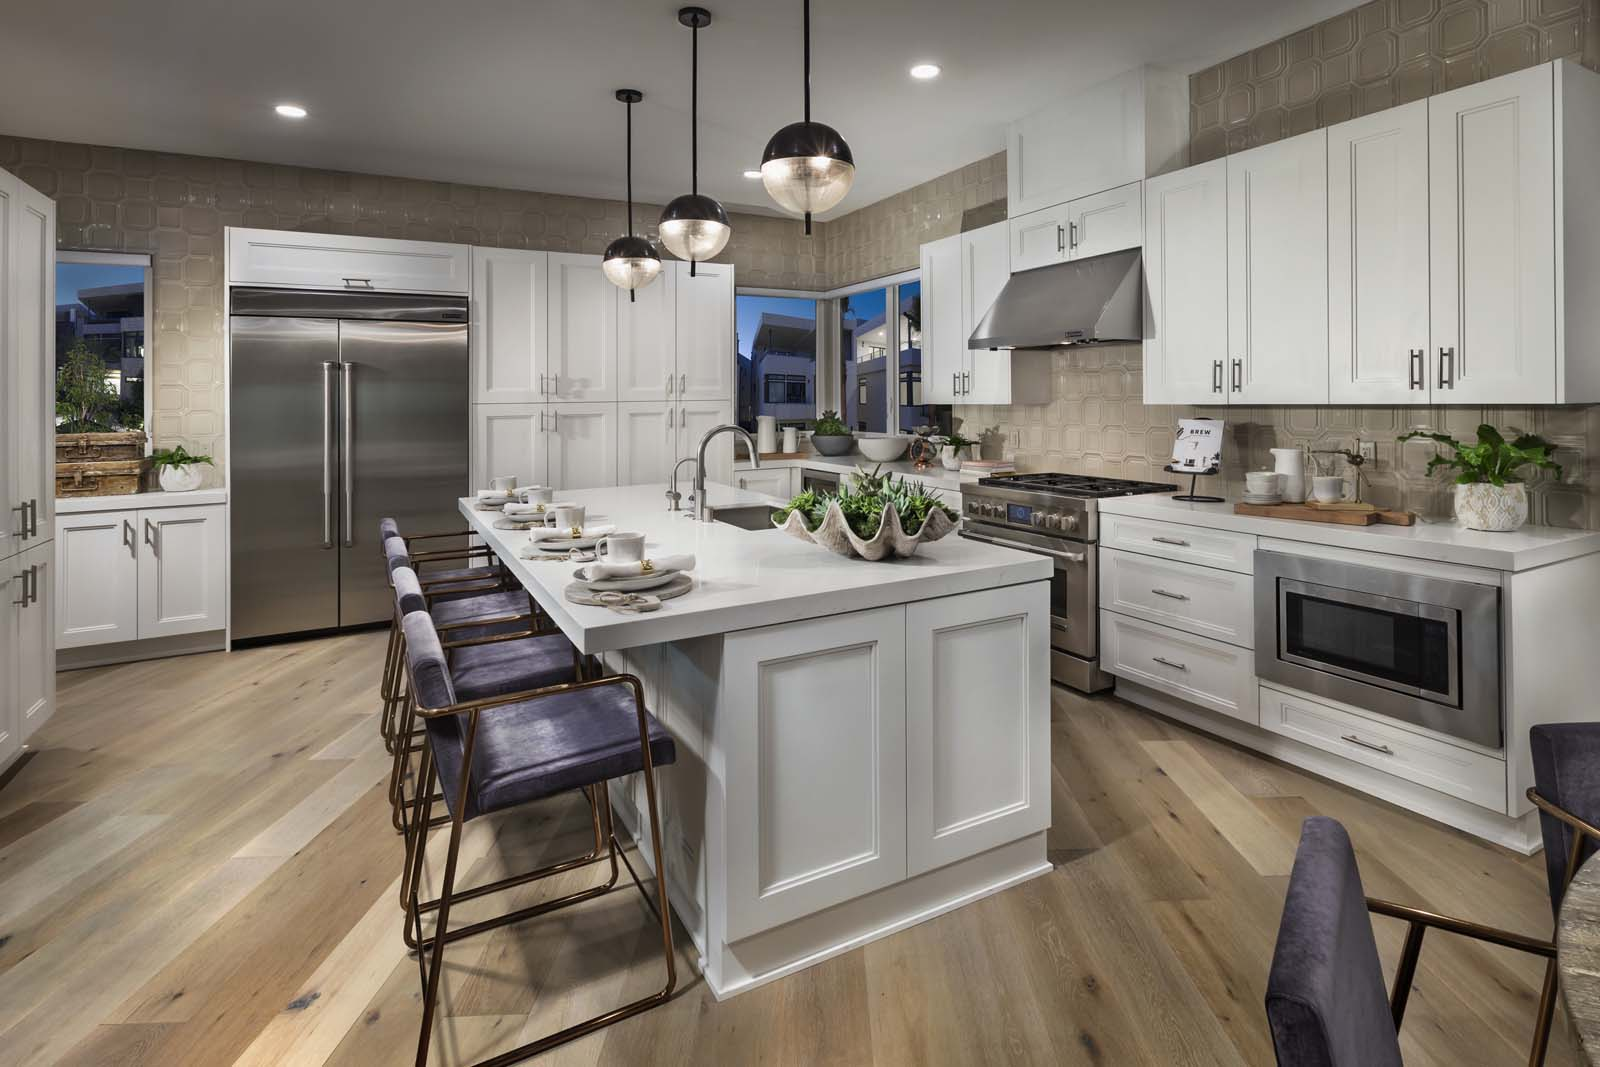 Kitchen | The Collection at Playa Vista in Los Angeles, CA | Brookfield Residential